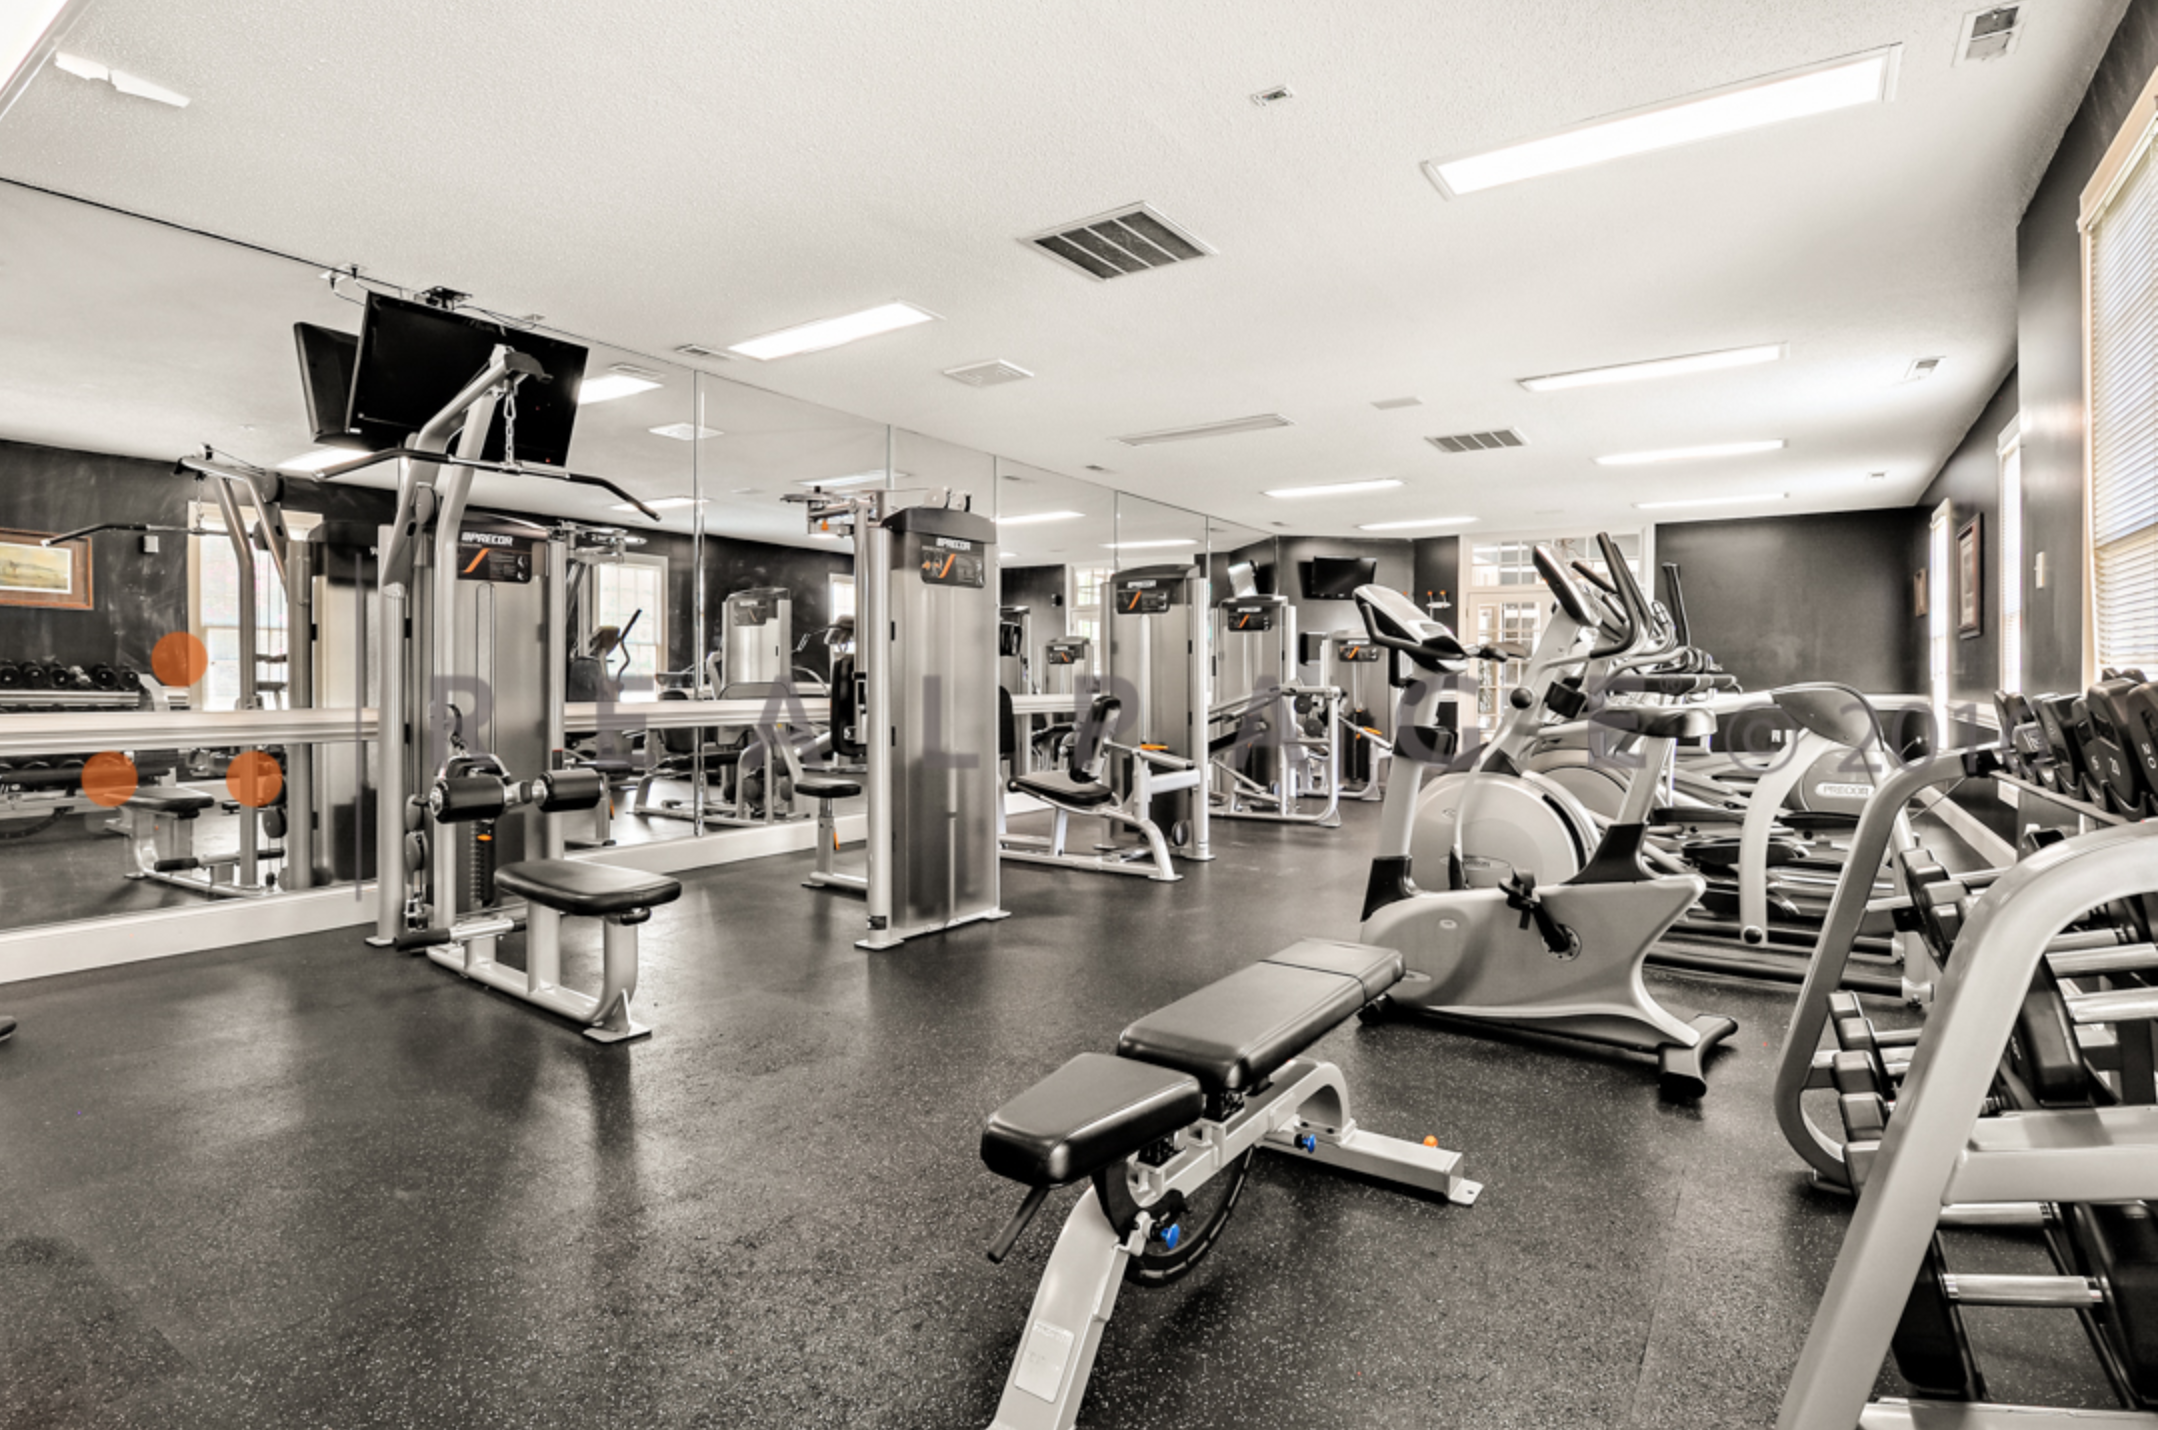 Fitness Center Treybrooke Greenville NC-PH-7 1.png